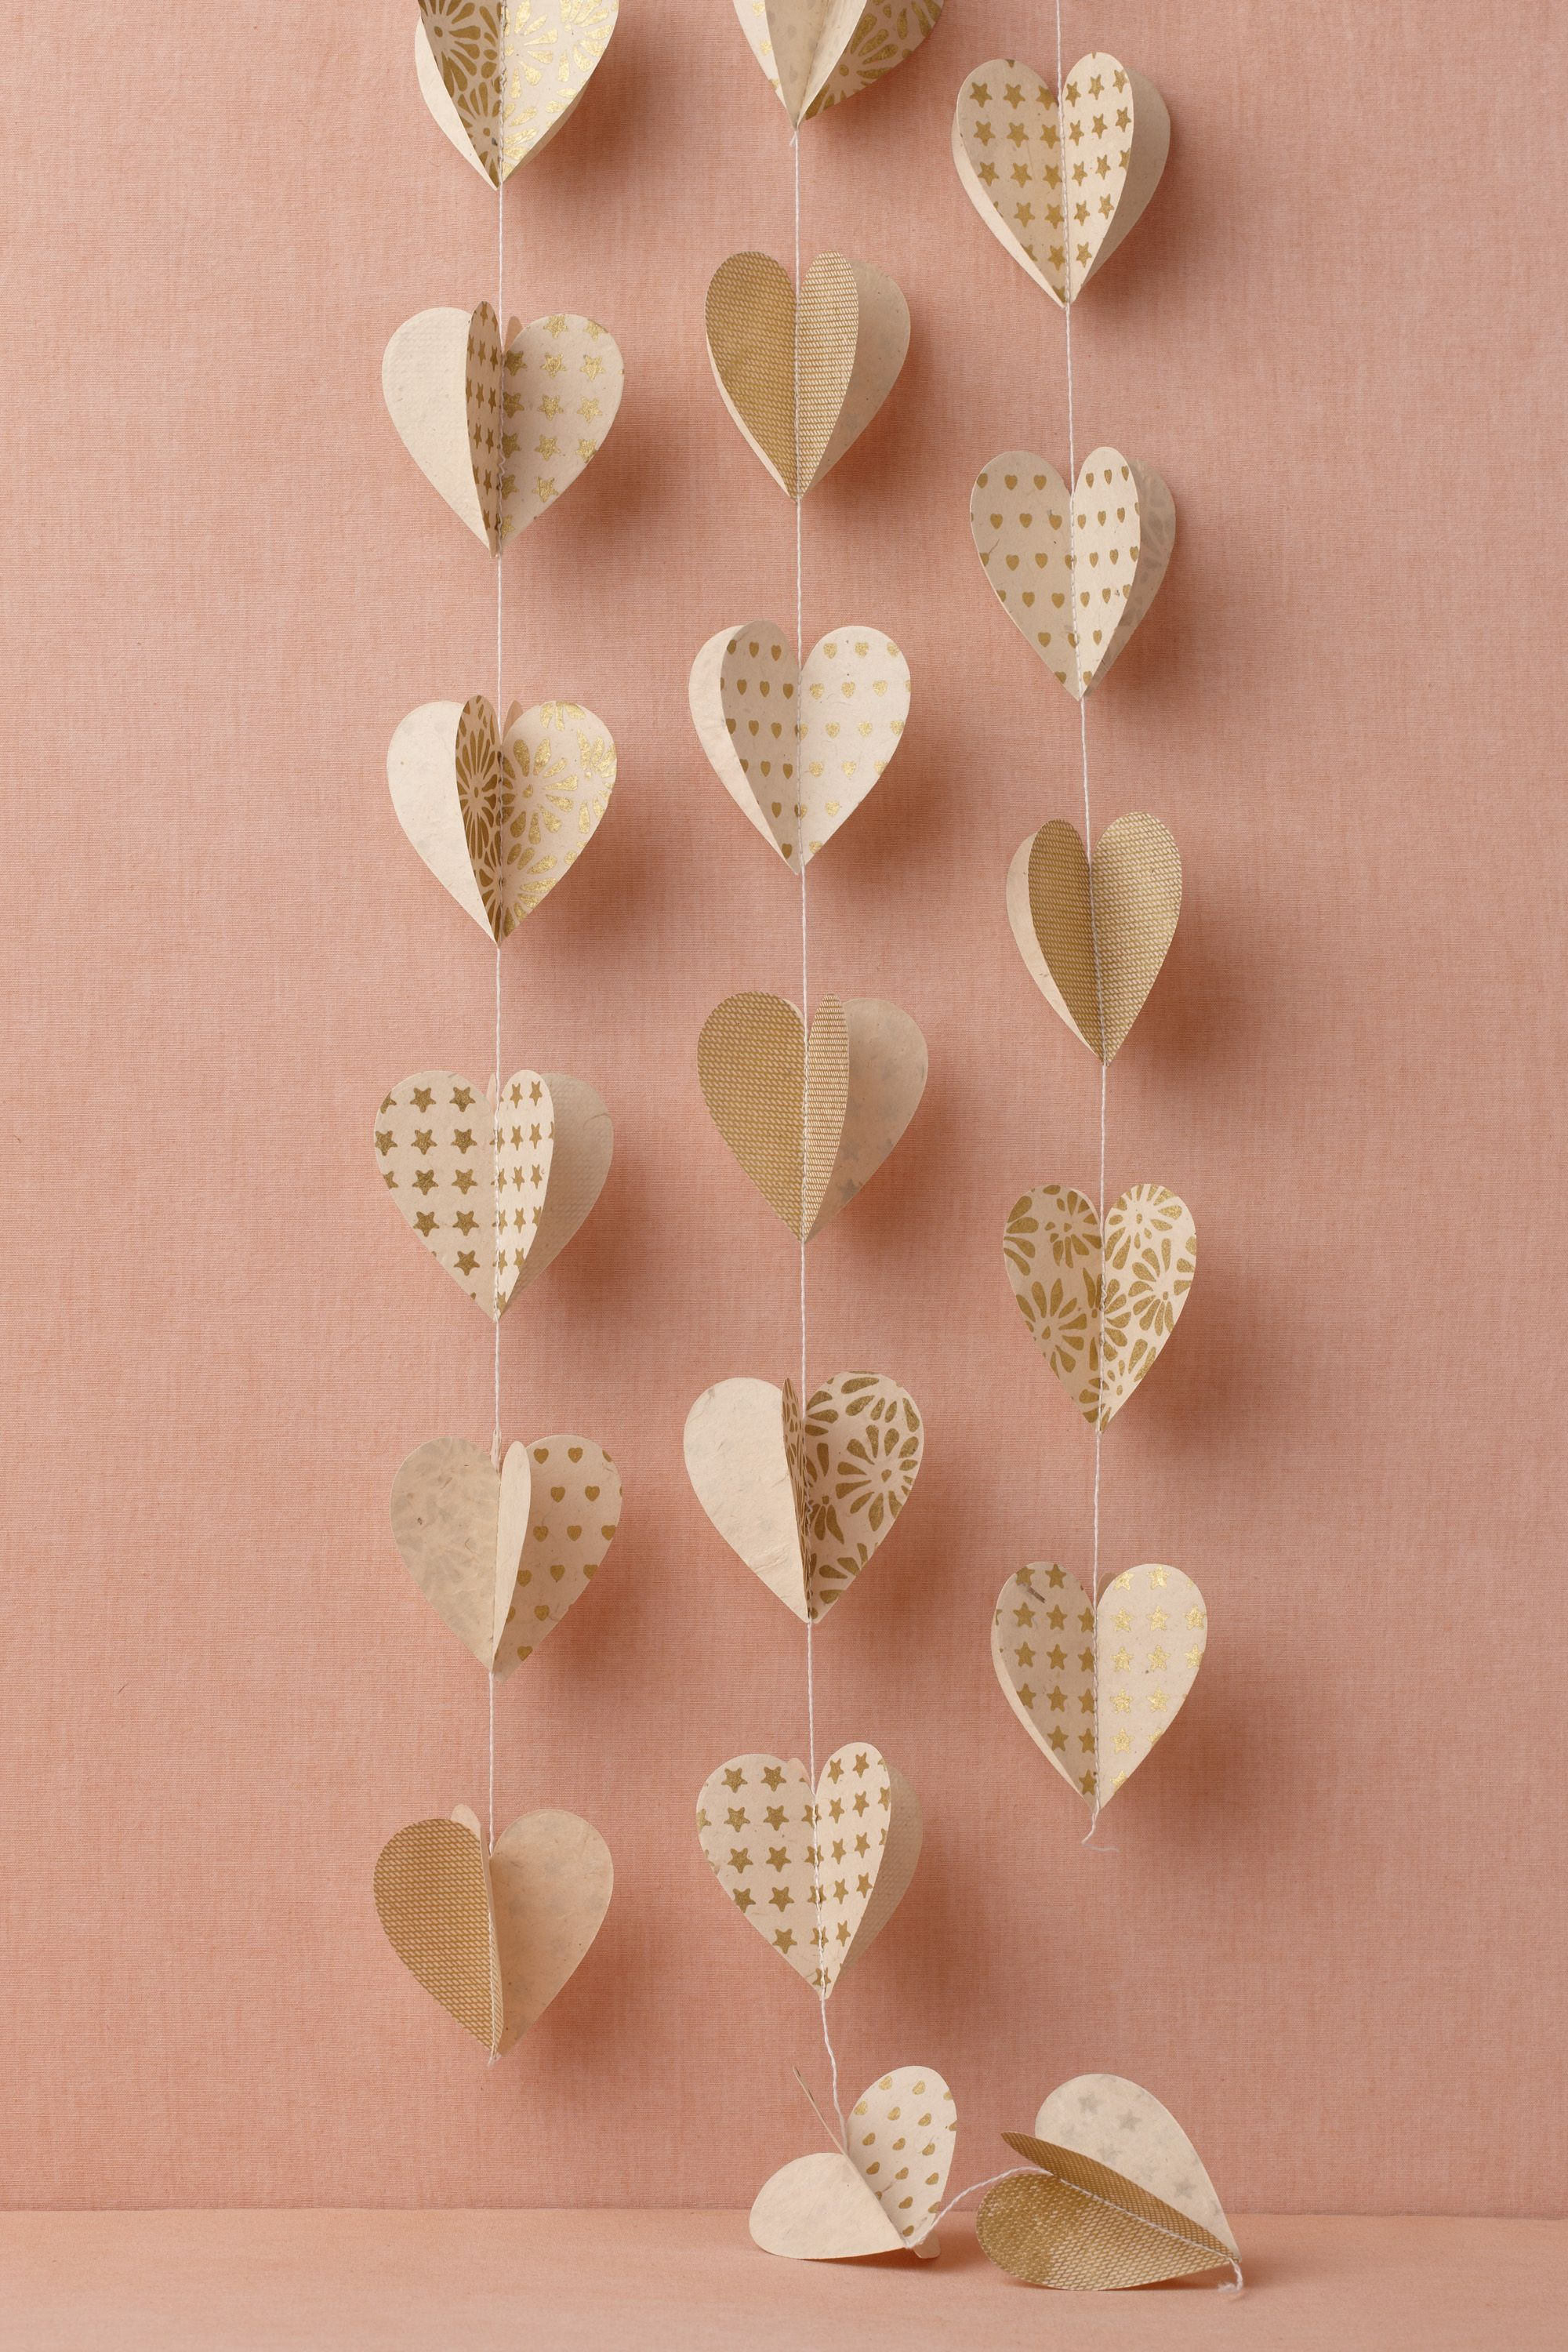 heart garlands for engagement party decorations could be pretty